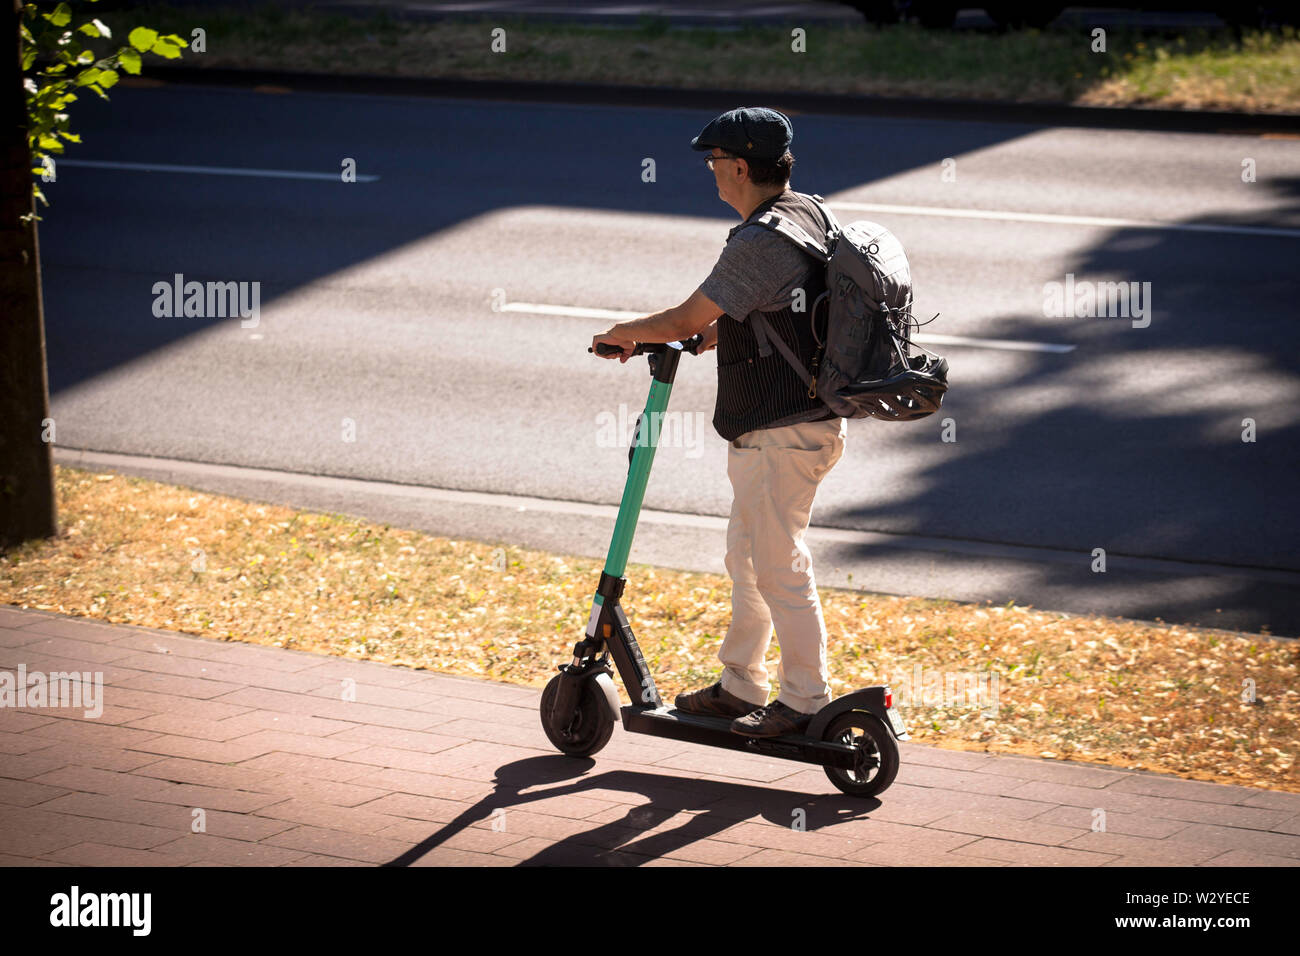 man on a rental electric scooter in the city, Cologne, Germany.  Mann auf Miet-Elektroscooter in der Innenstadt, Koeln, Deutschland. Stock Photo